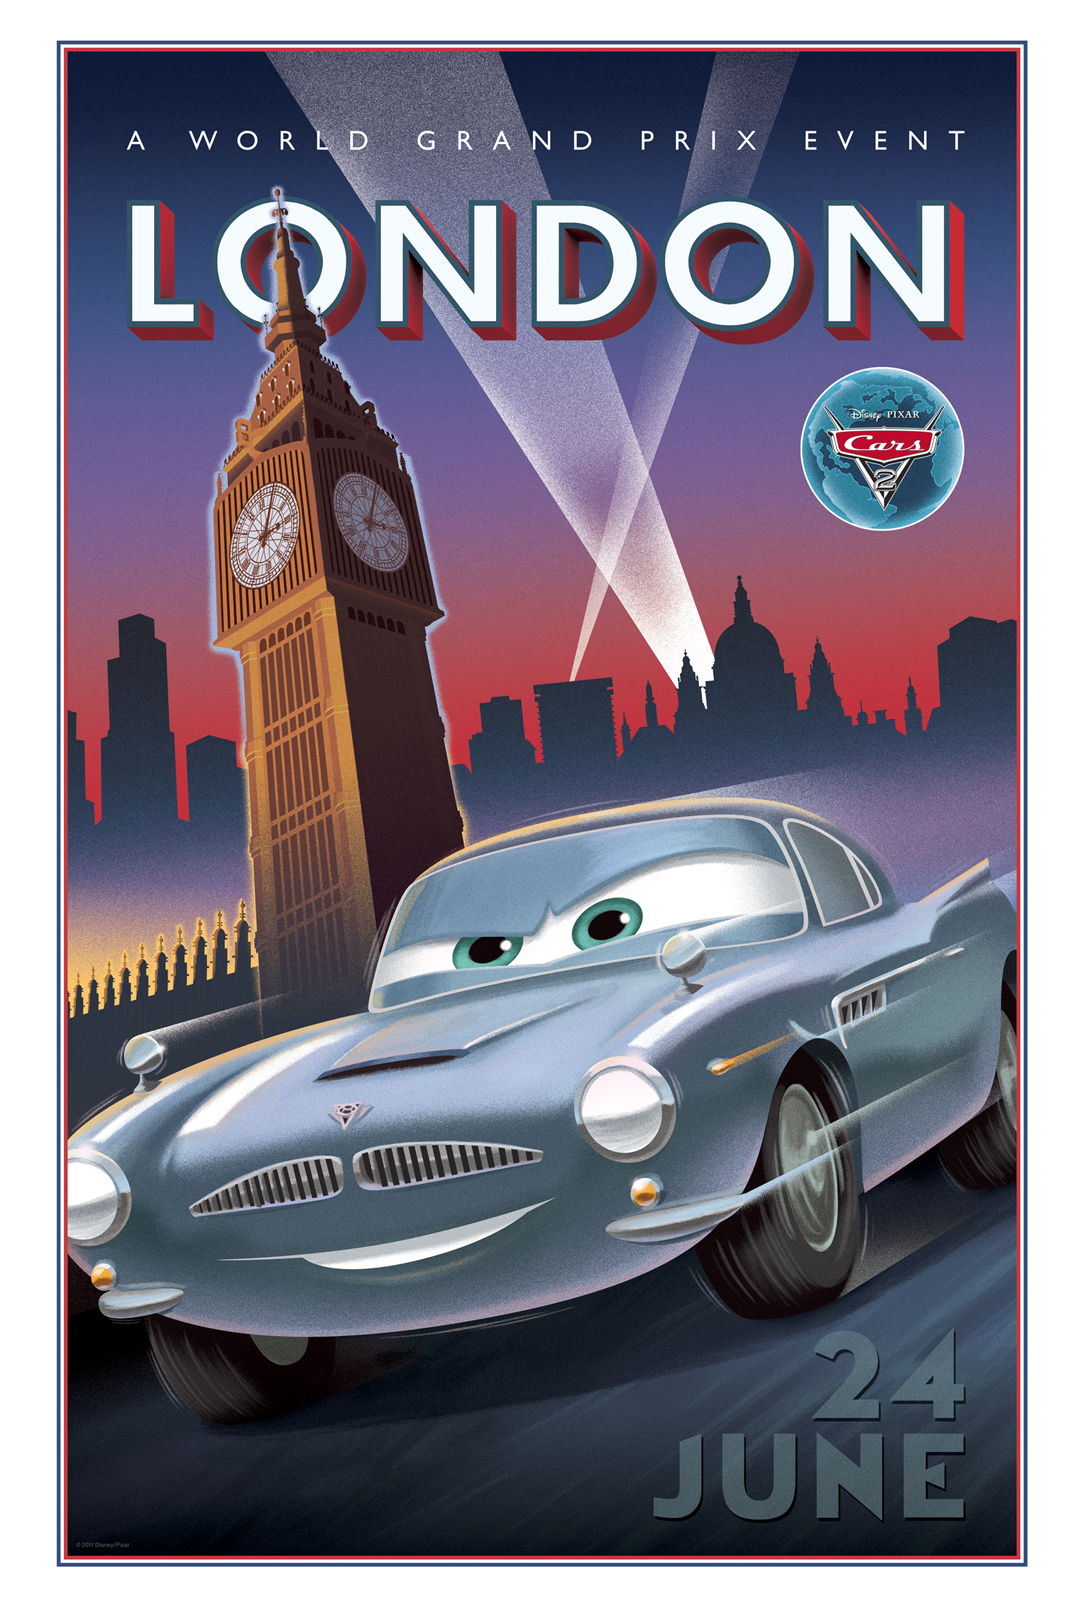 Cars 2 Goes Retro with Some Sweet World Grand Prix Posters